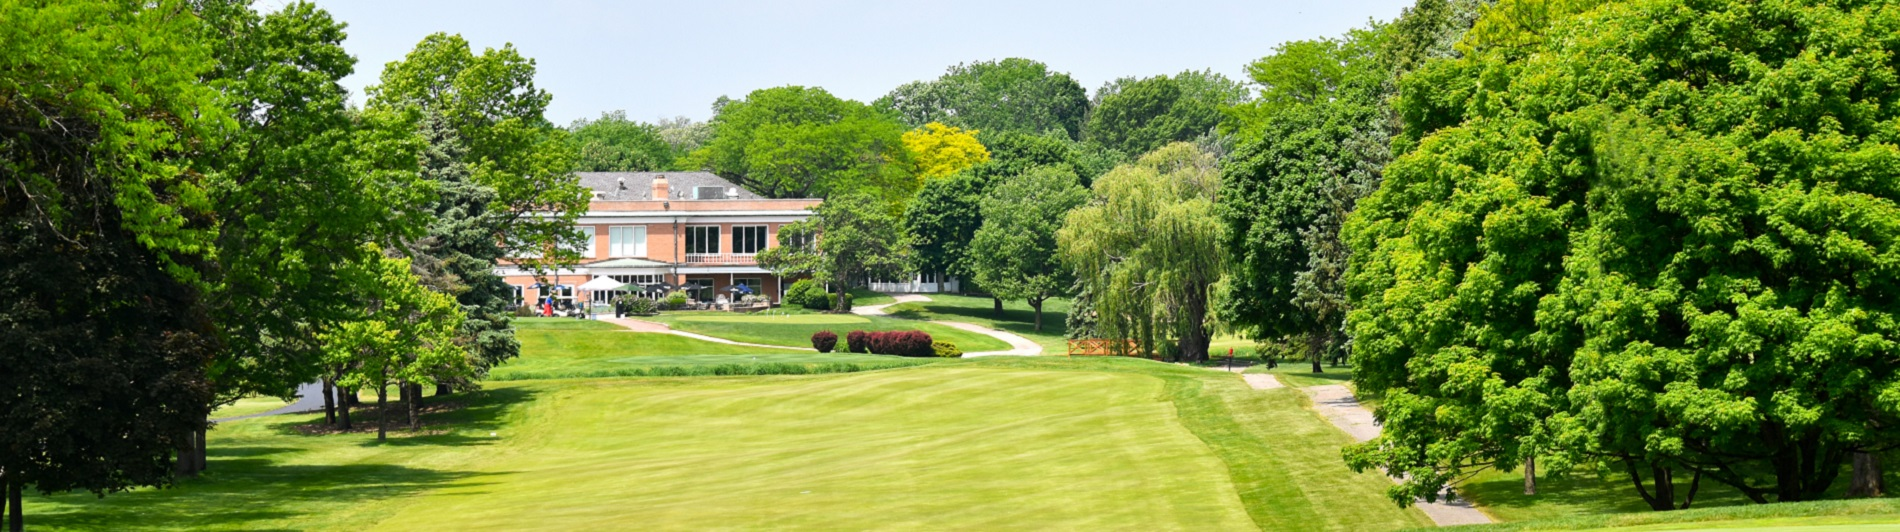 Overview of golf course named Itasca Country Club